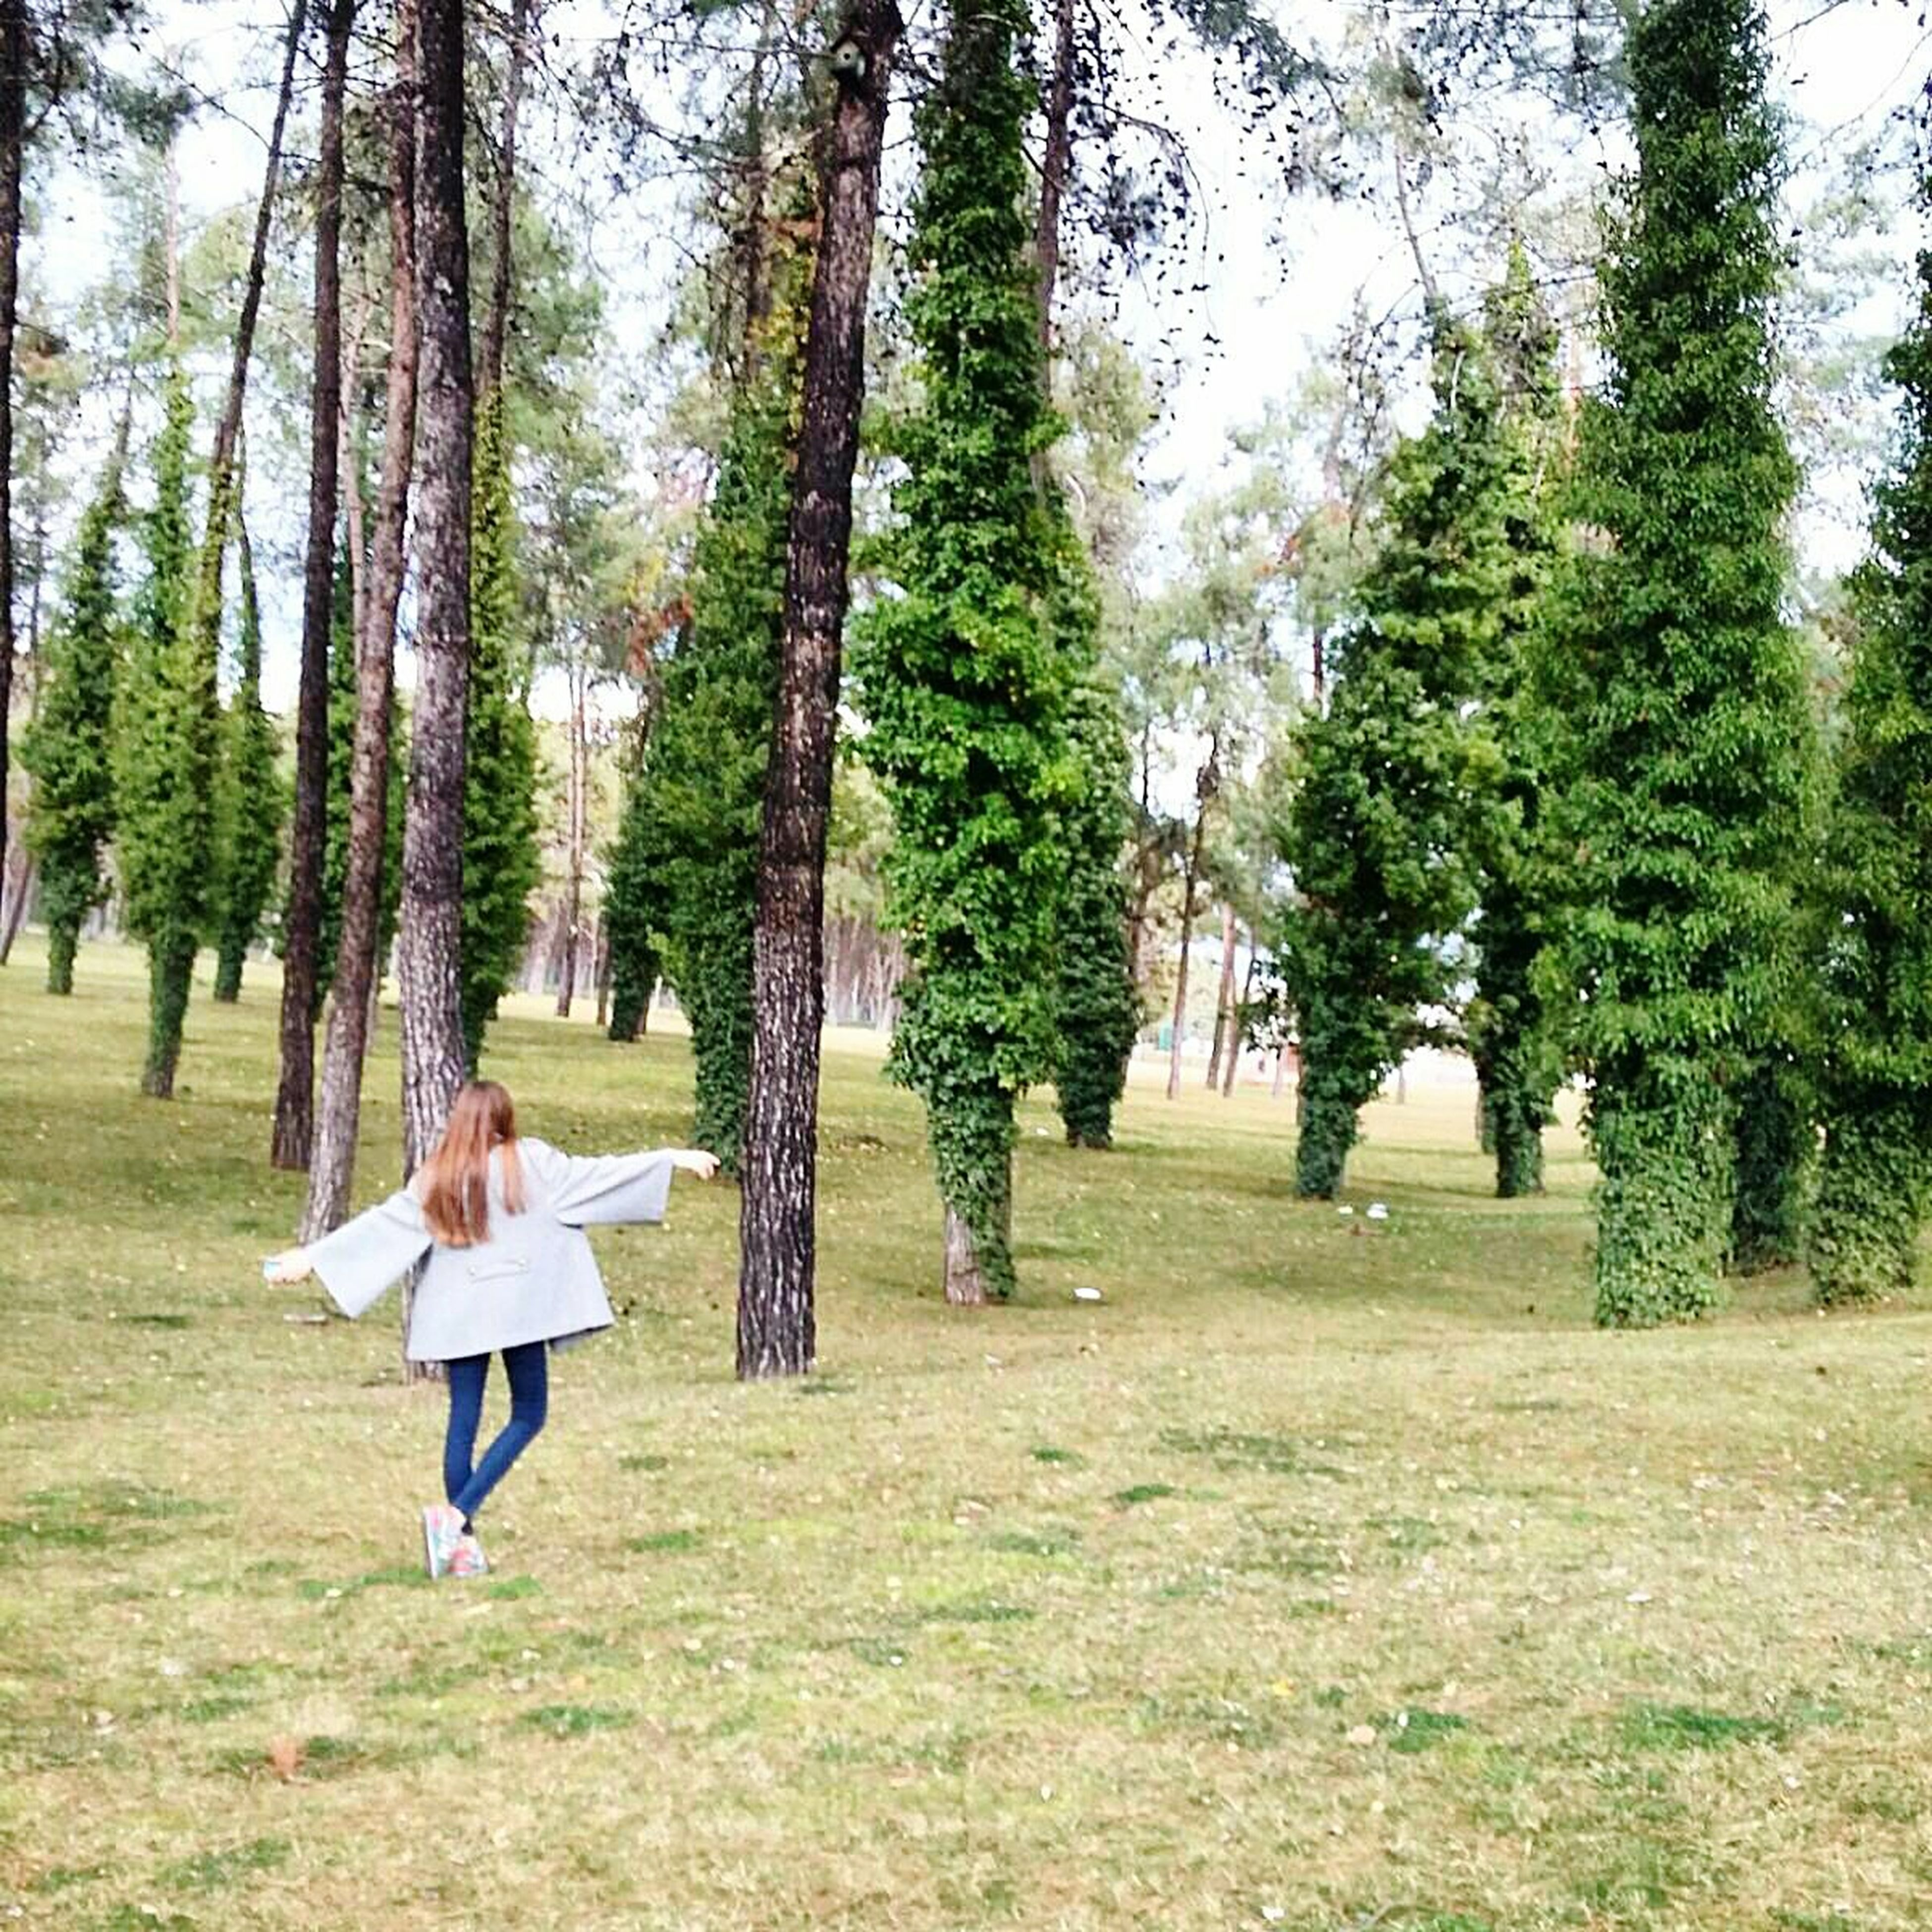 tree, grass, lifestyles, leisure activity, men, person, green color, growth, tree trunk, park - man made space, nature, tranquility, tranquil scene, walking, landscape, field, rear view, beauty in nature